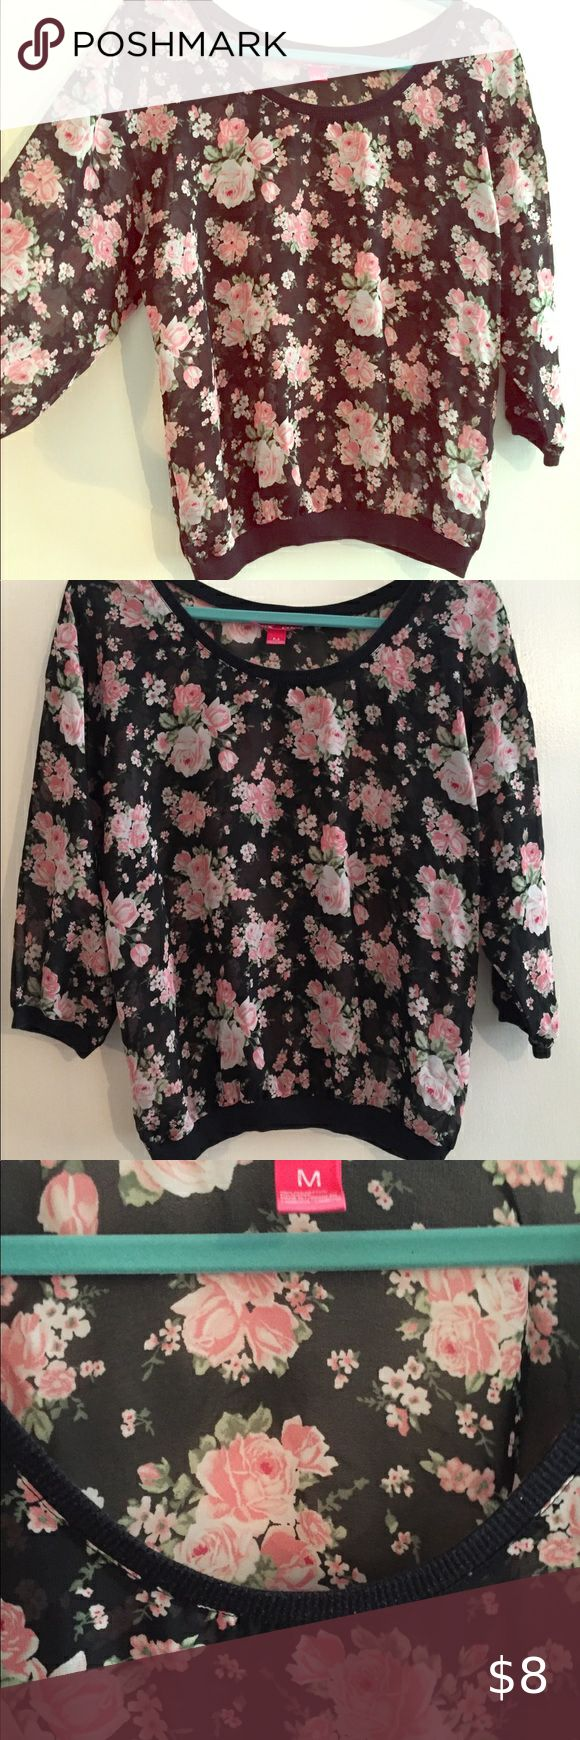 Sheer black floral top in 2020 Black floral top, Floral